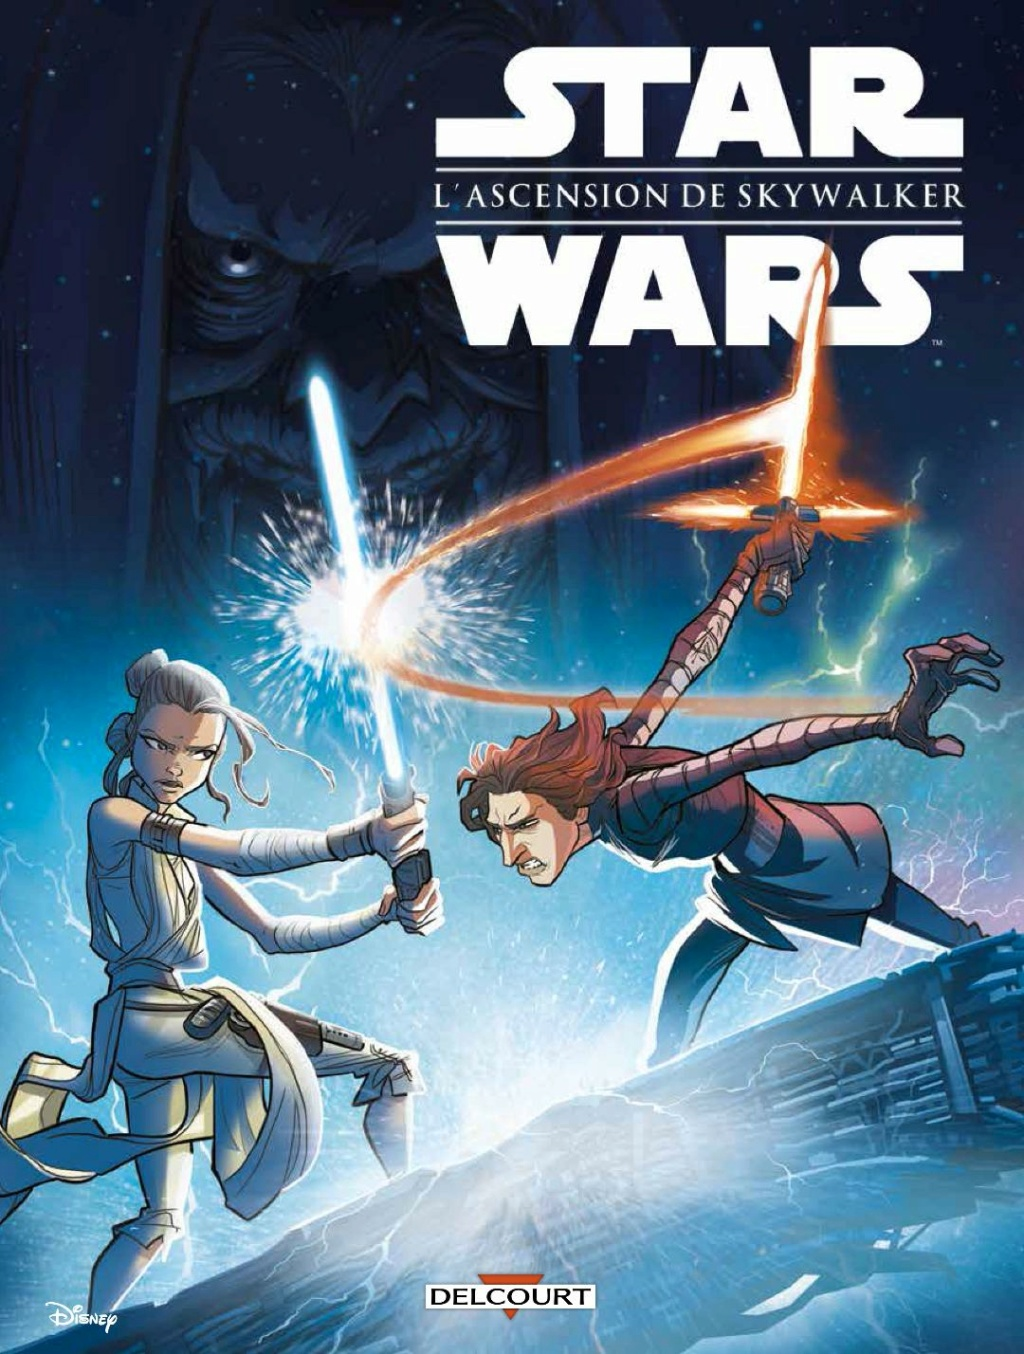 Star Wars L'Ascension de Skywalker (Jeunesse) - DELCOURT Thumbn10